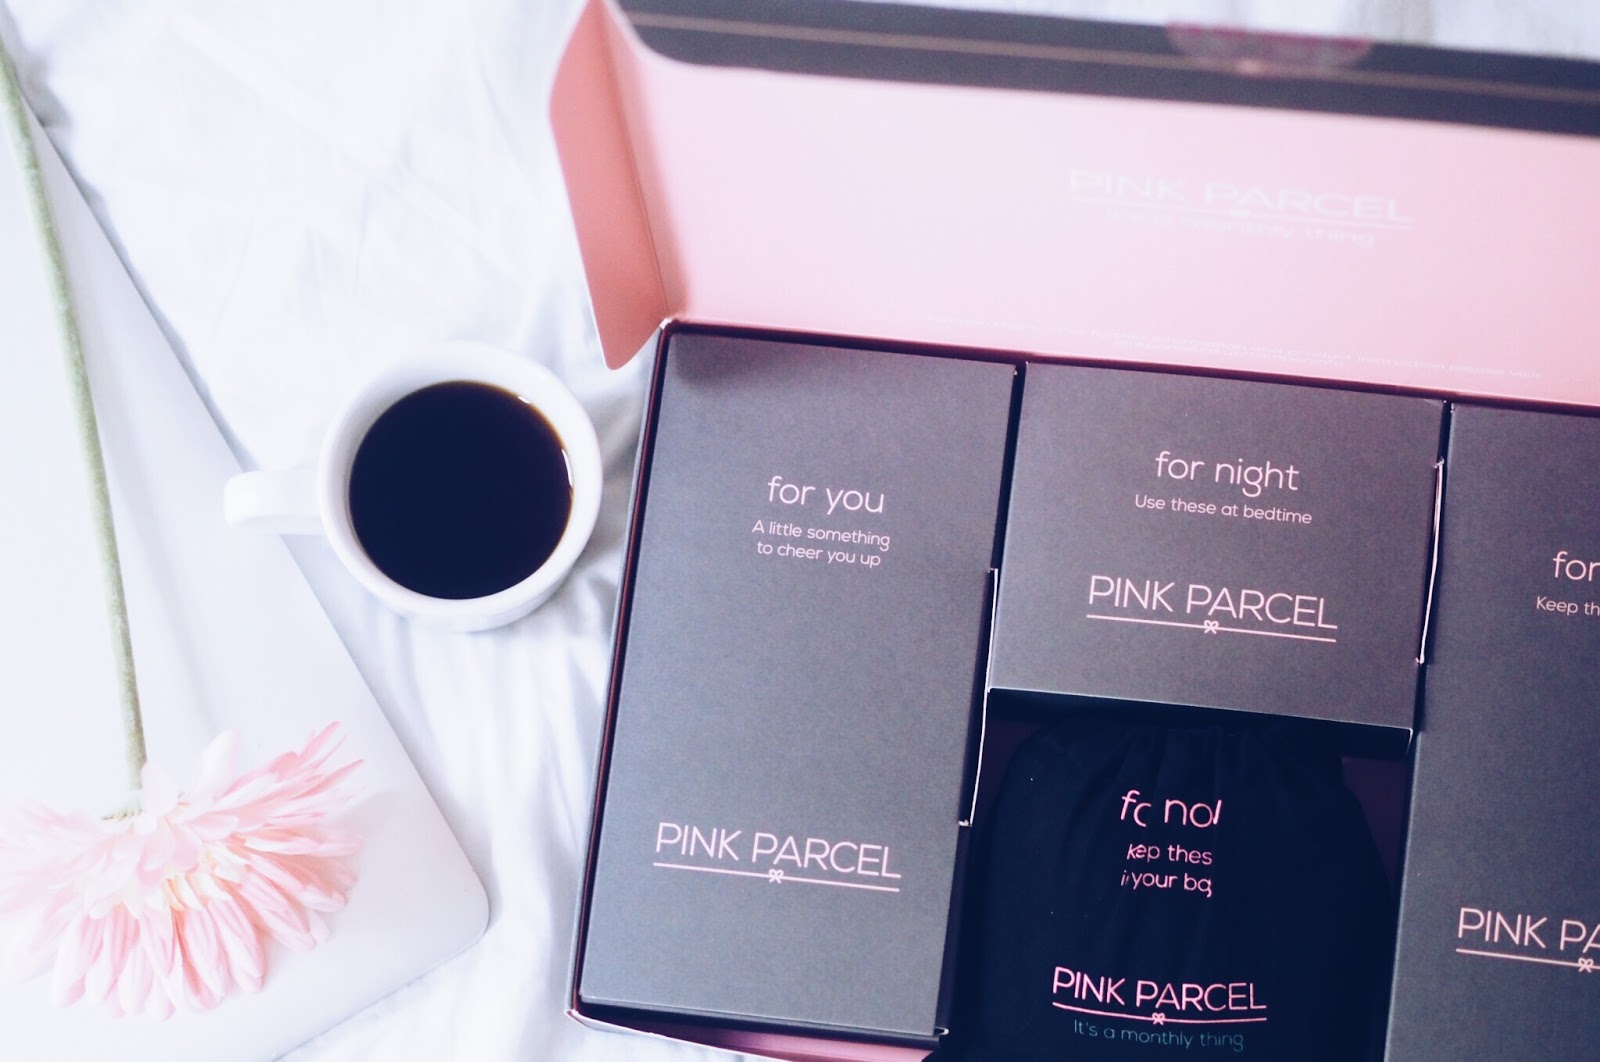 Making your period that little bit better with Pink Parcel.